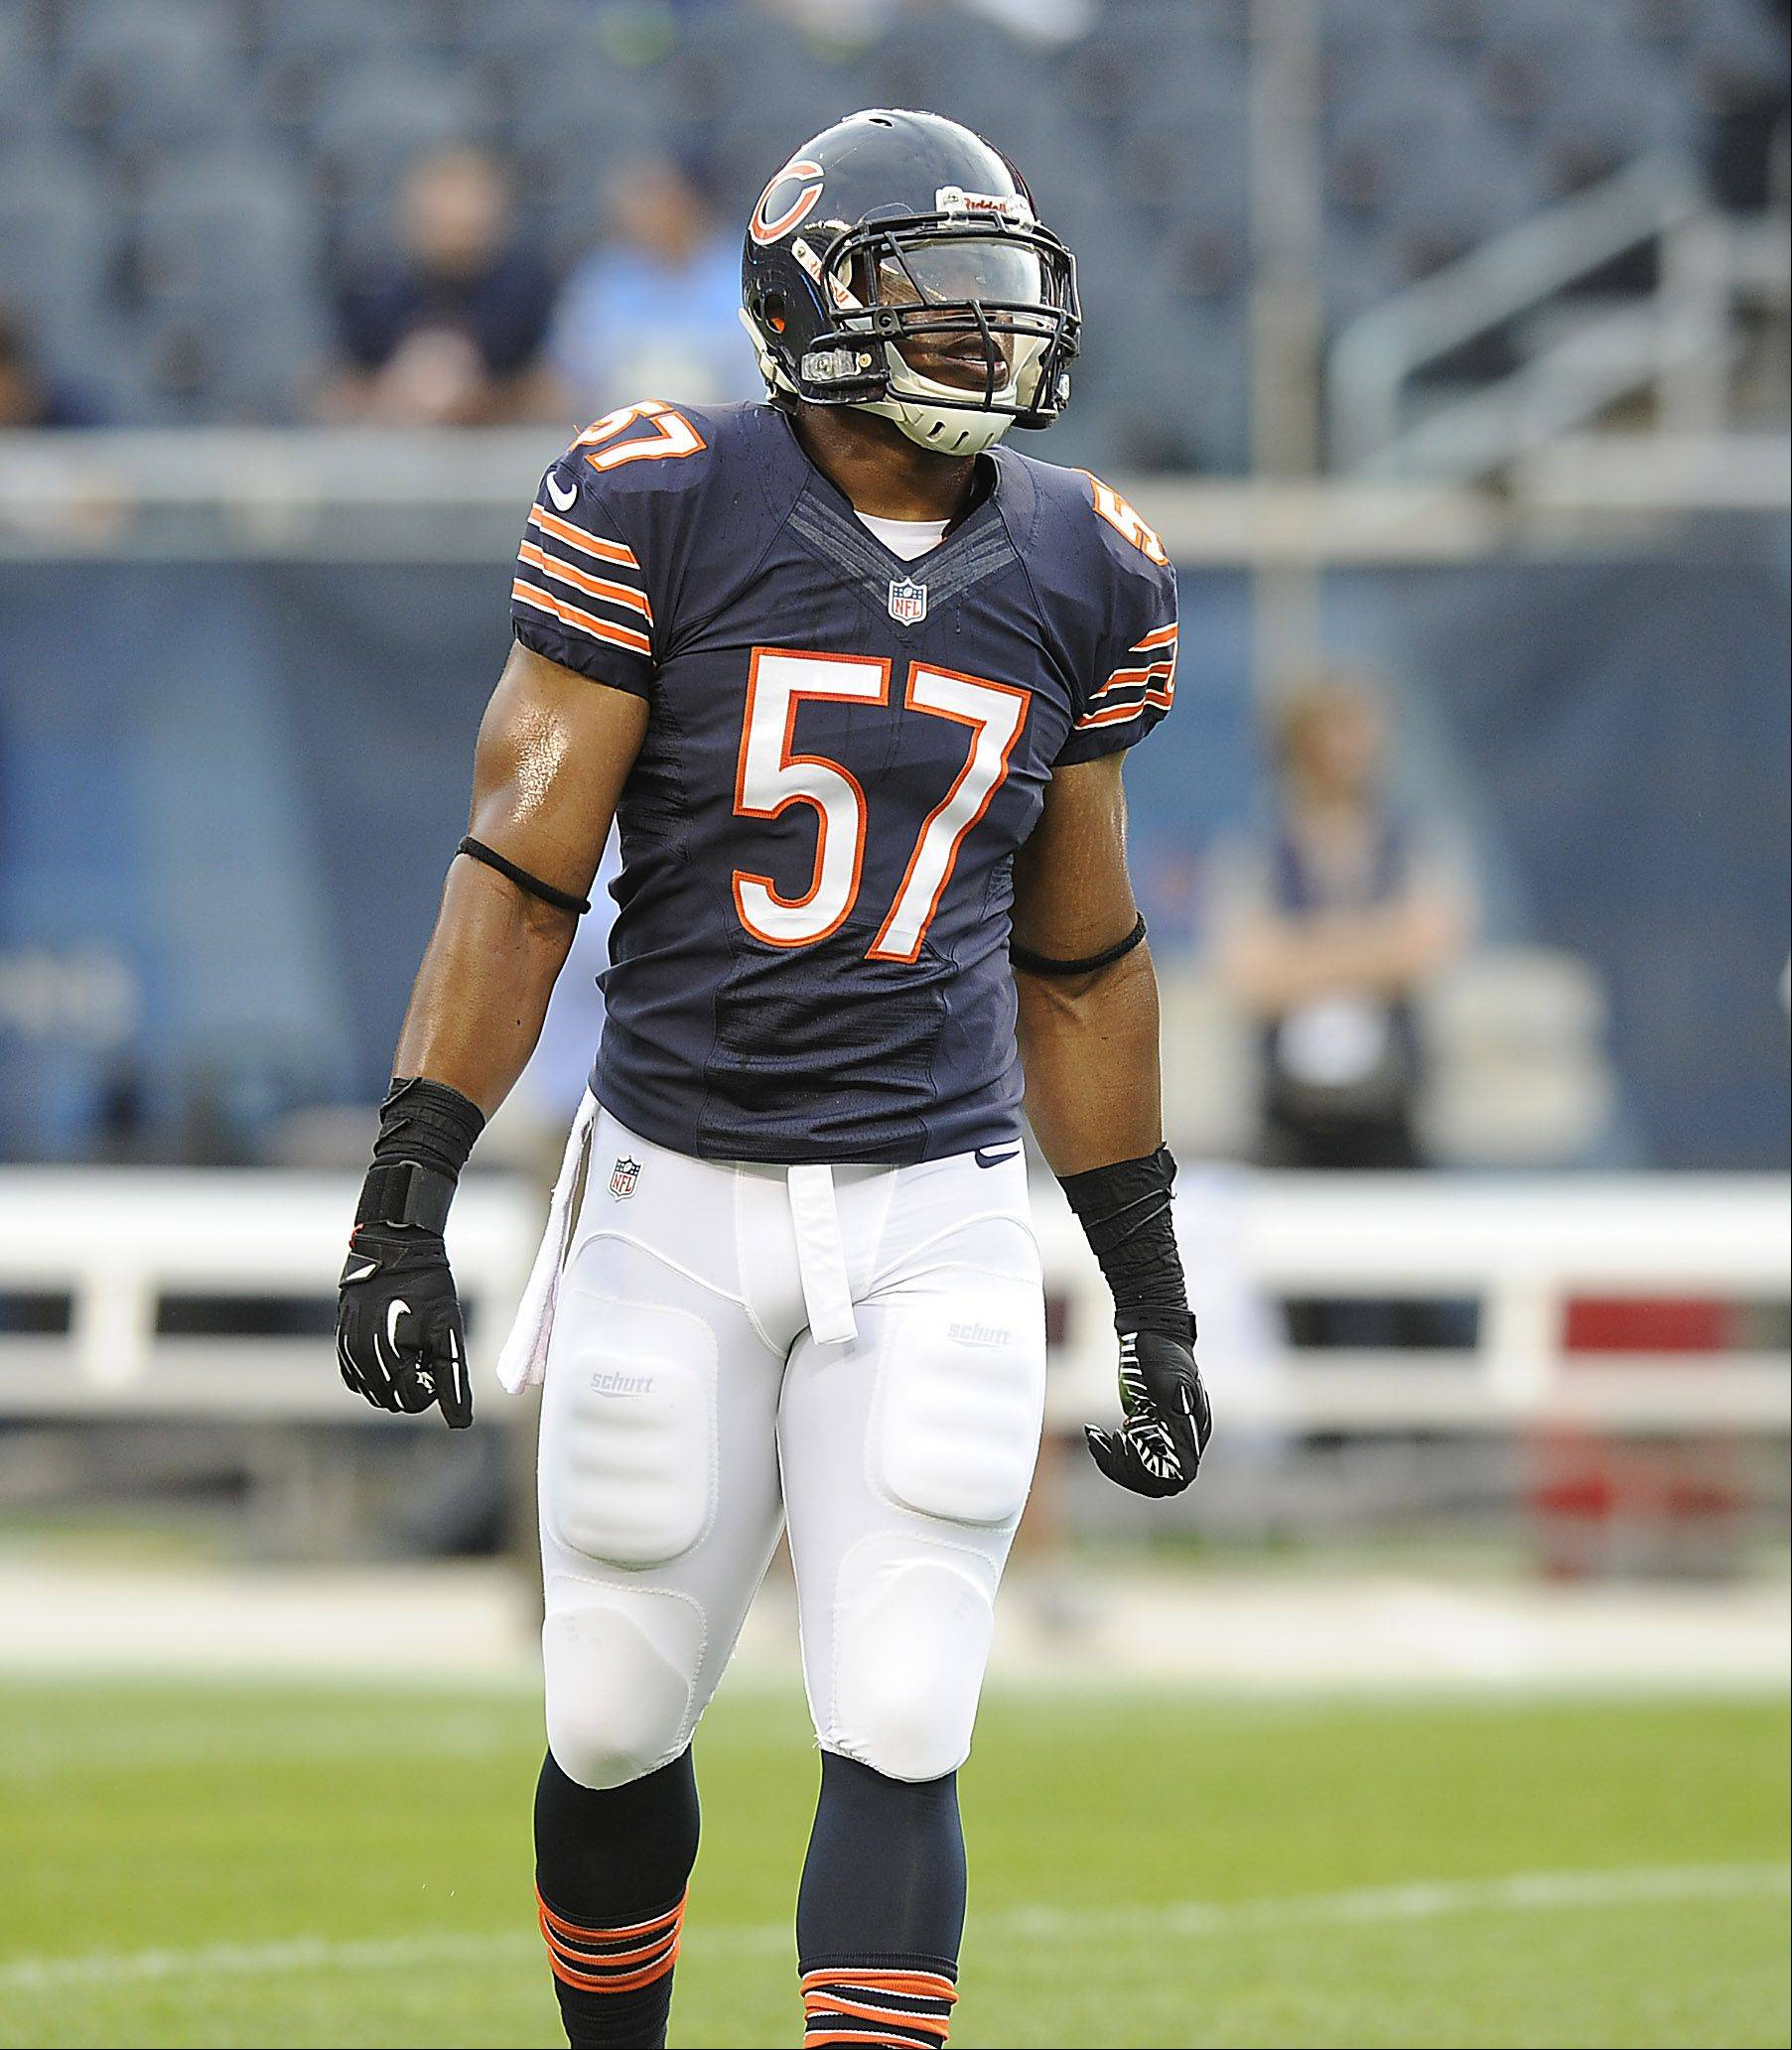 Bears rookie linebacker Jon Bostic might be appealing the $21,000 fine he received for his hit on Chargers wide receiver Mike Willie, especially after all the support he received Wednesday from teammates.